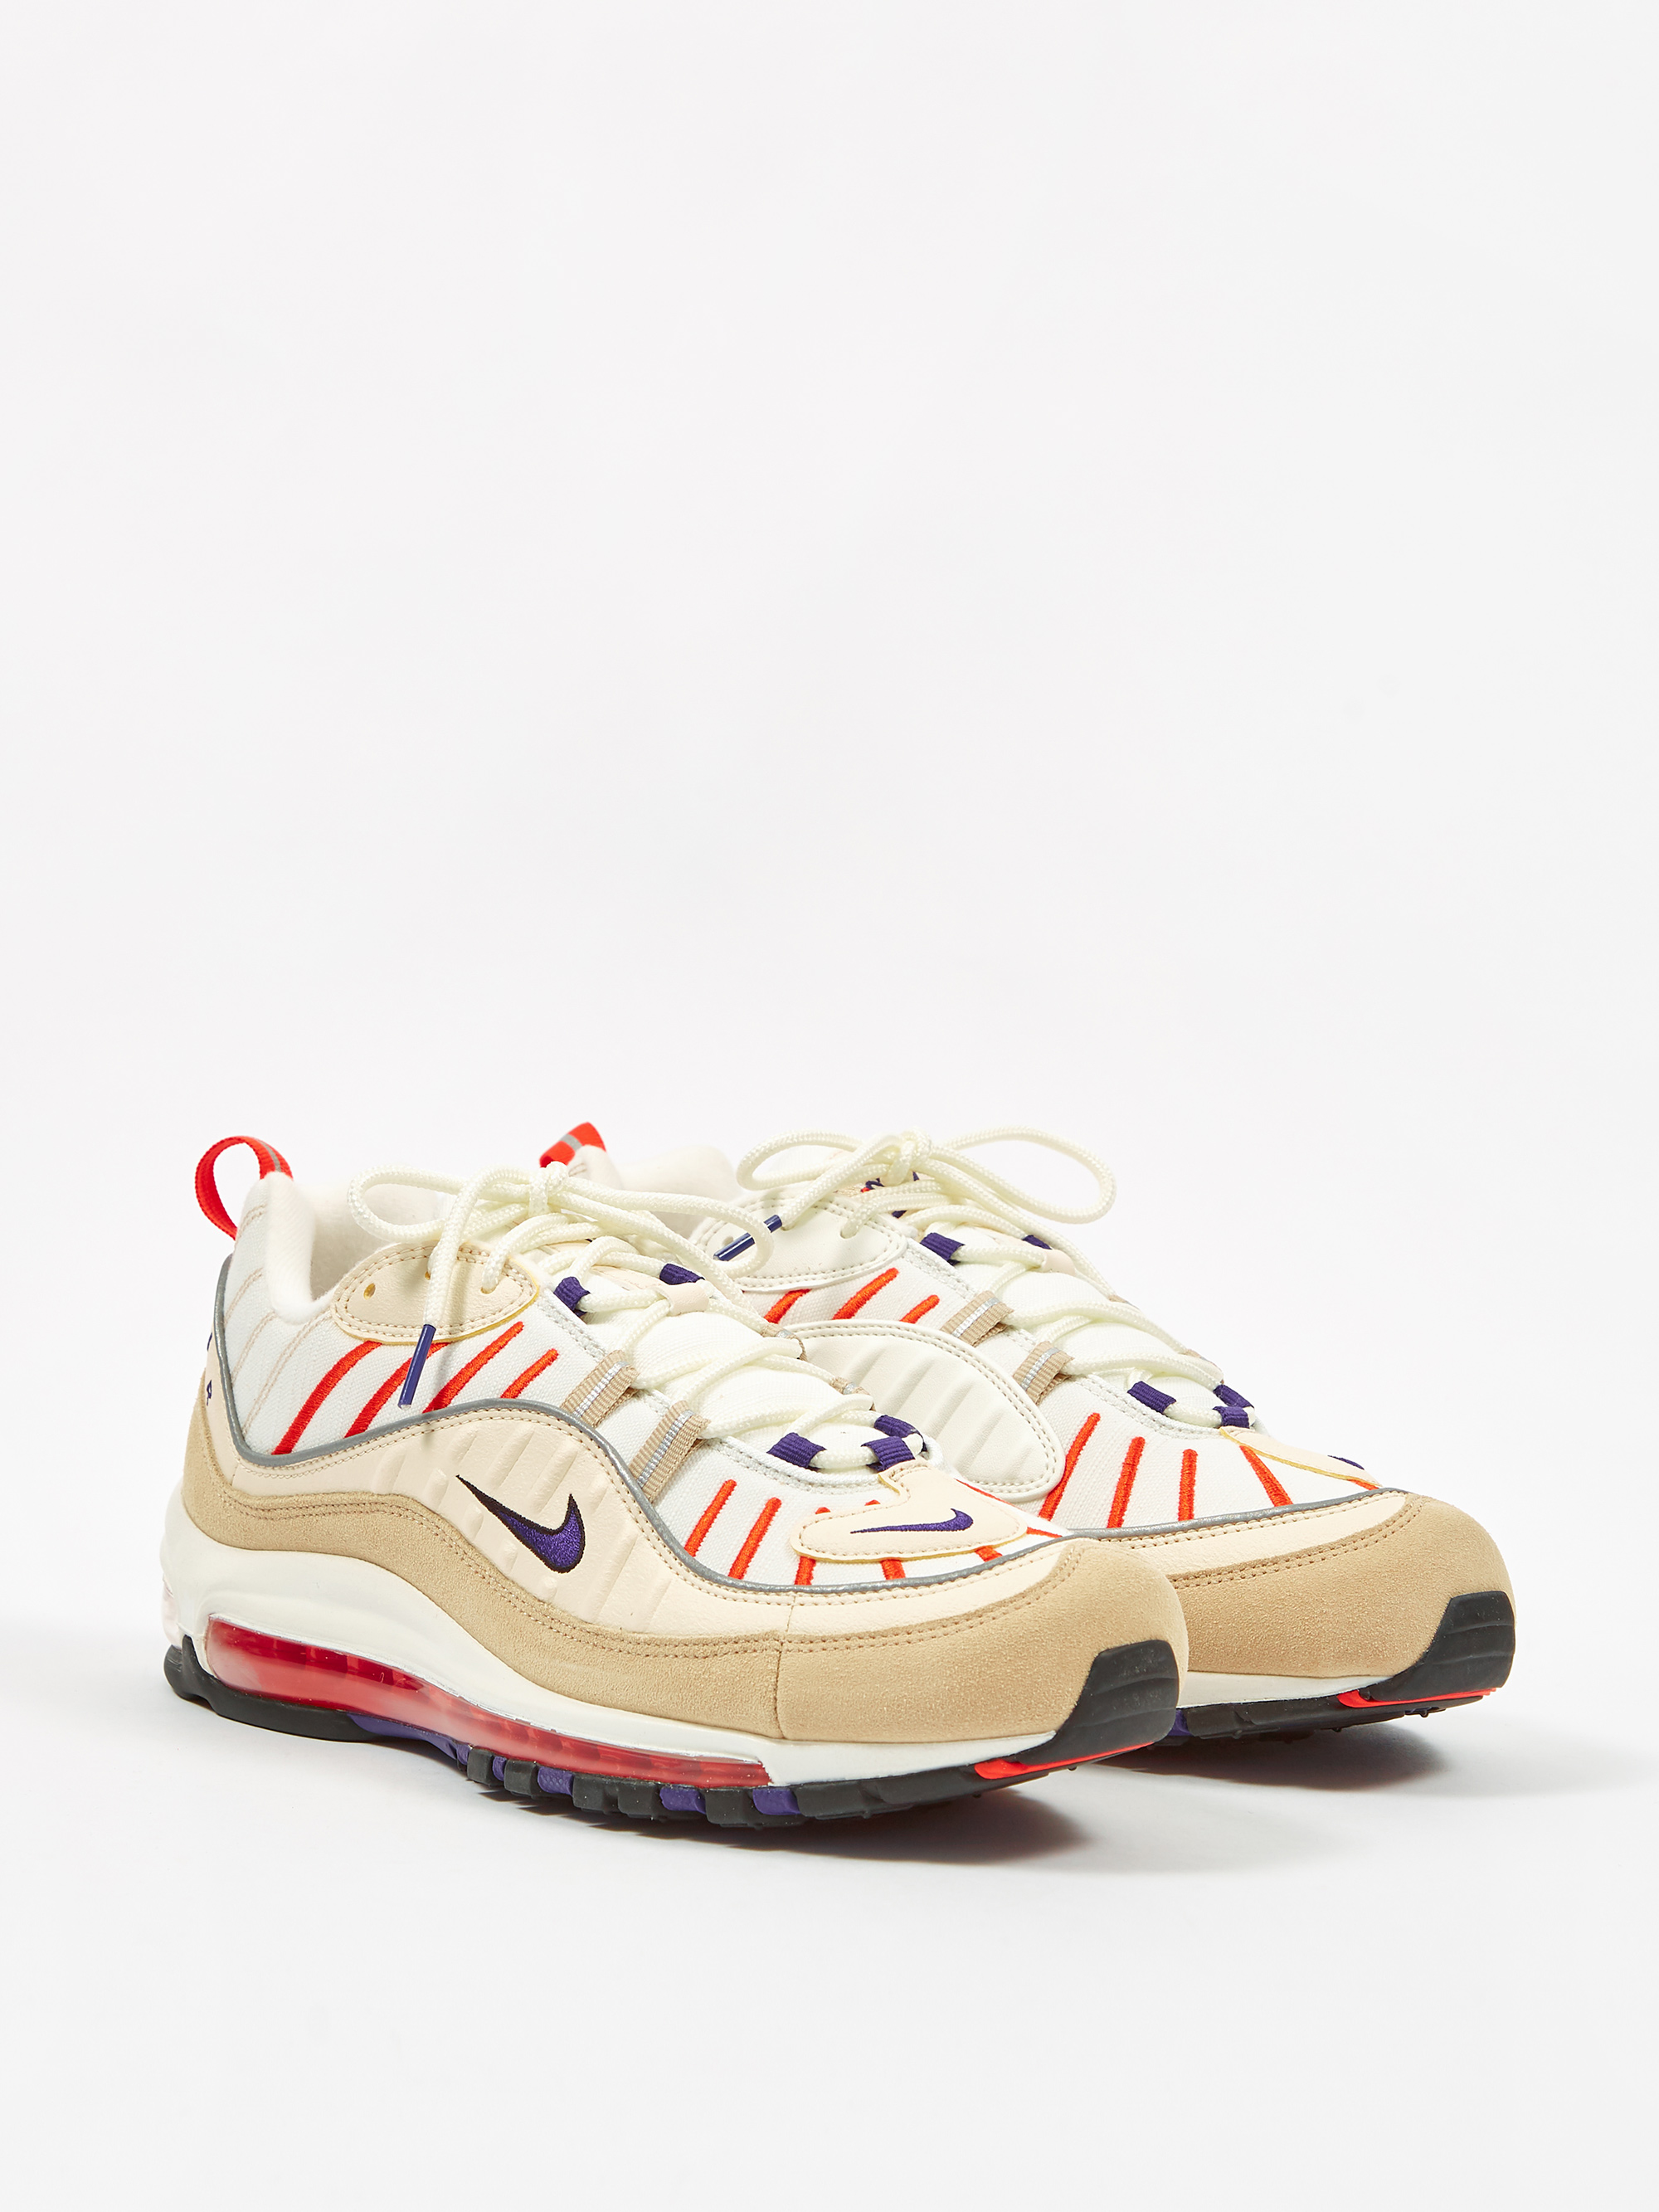 Nike Air Max 98 SailPurpleCreamDesert Ore